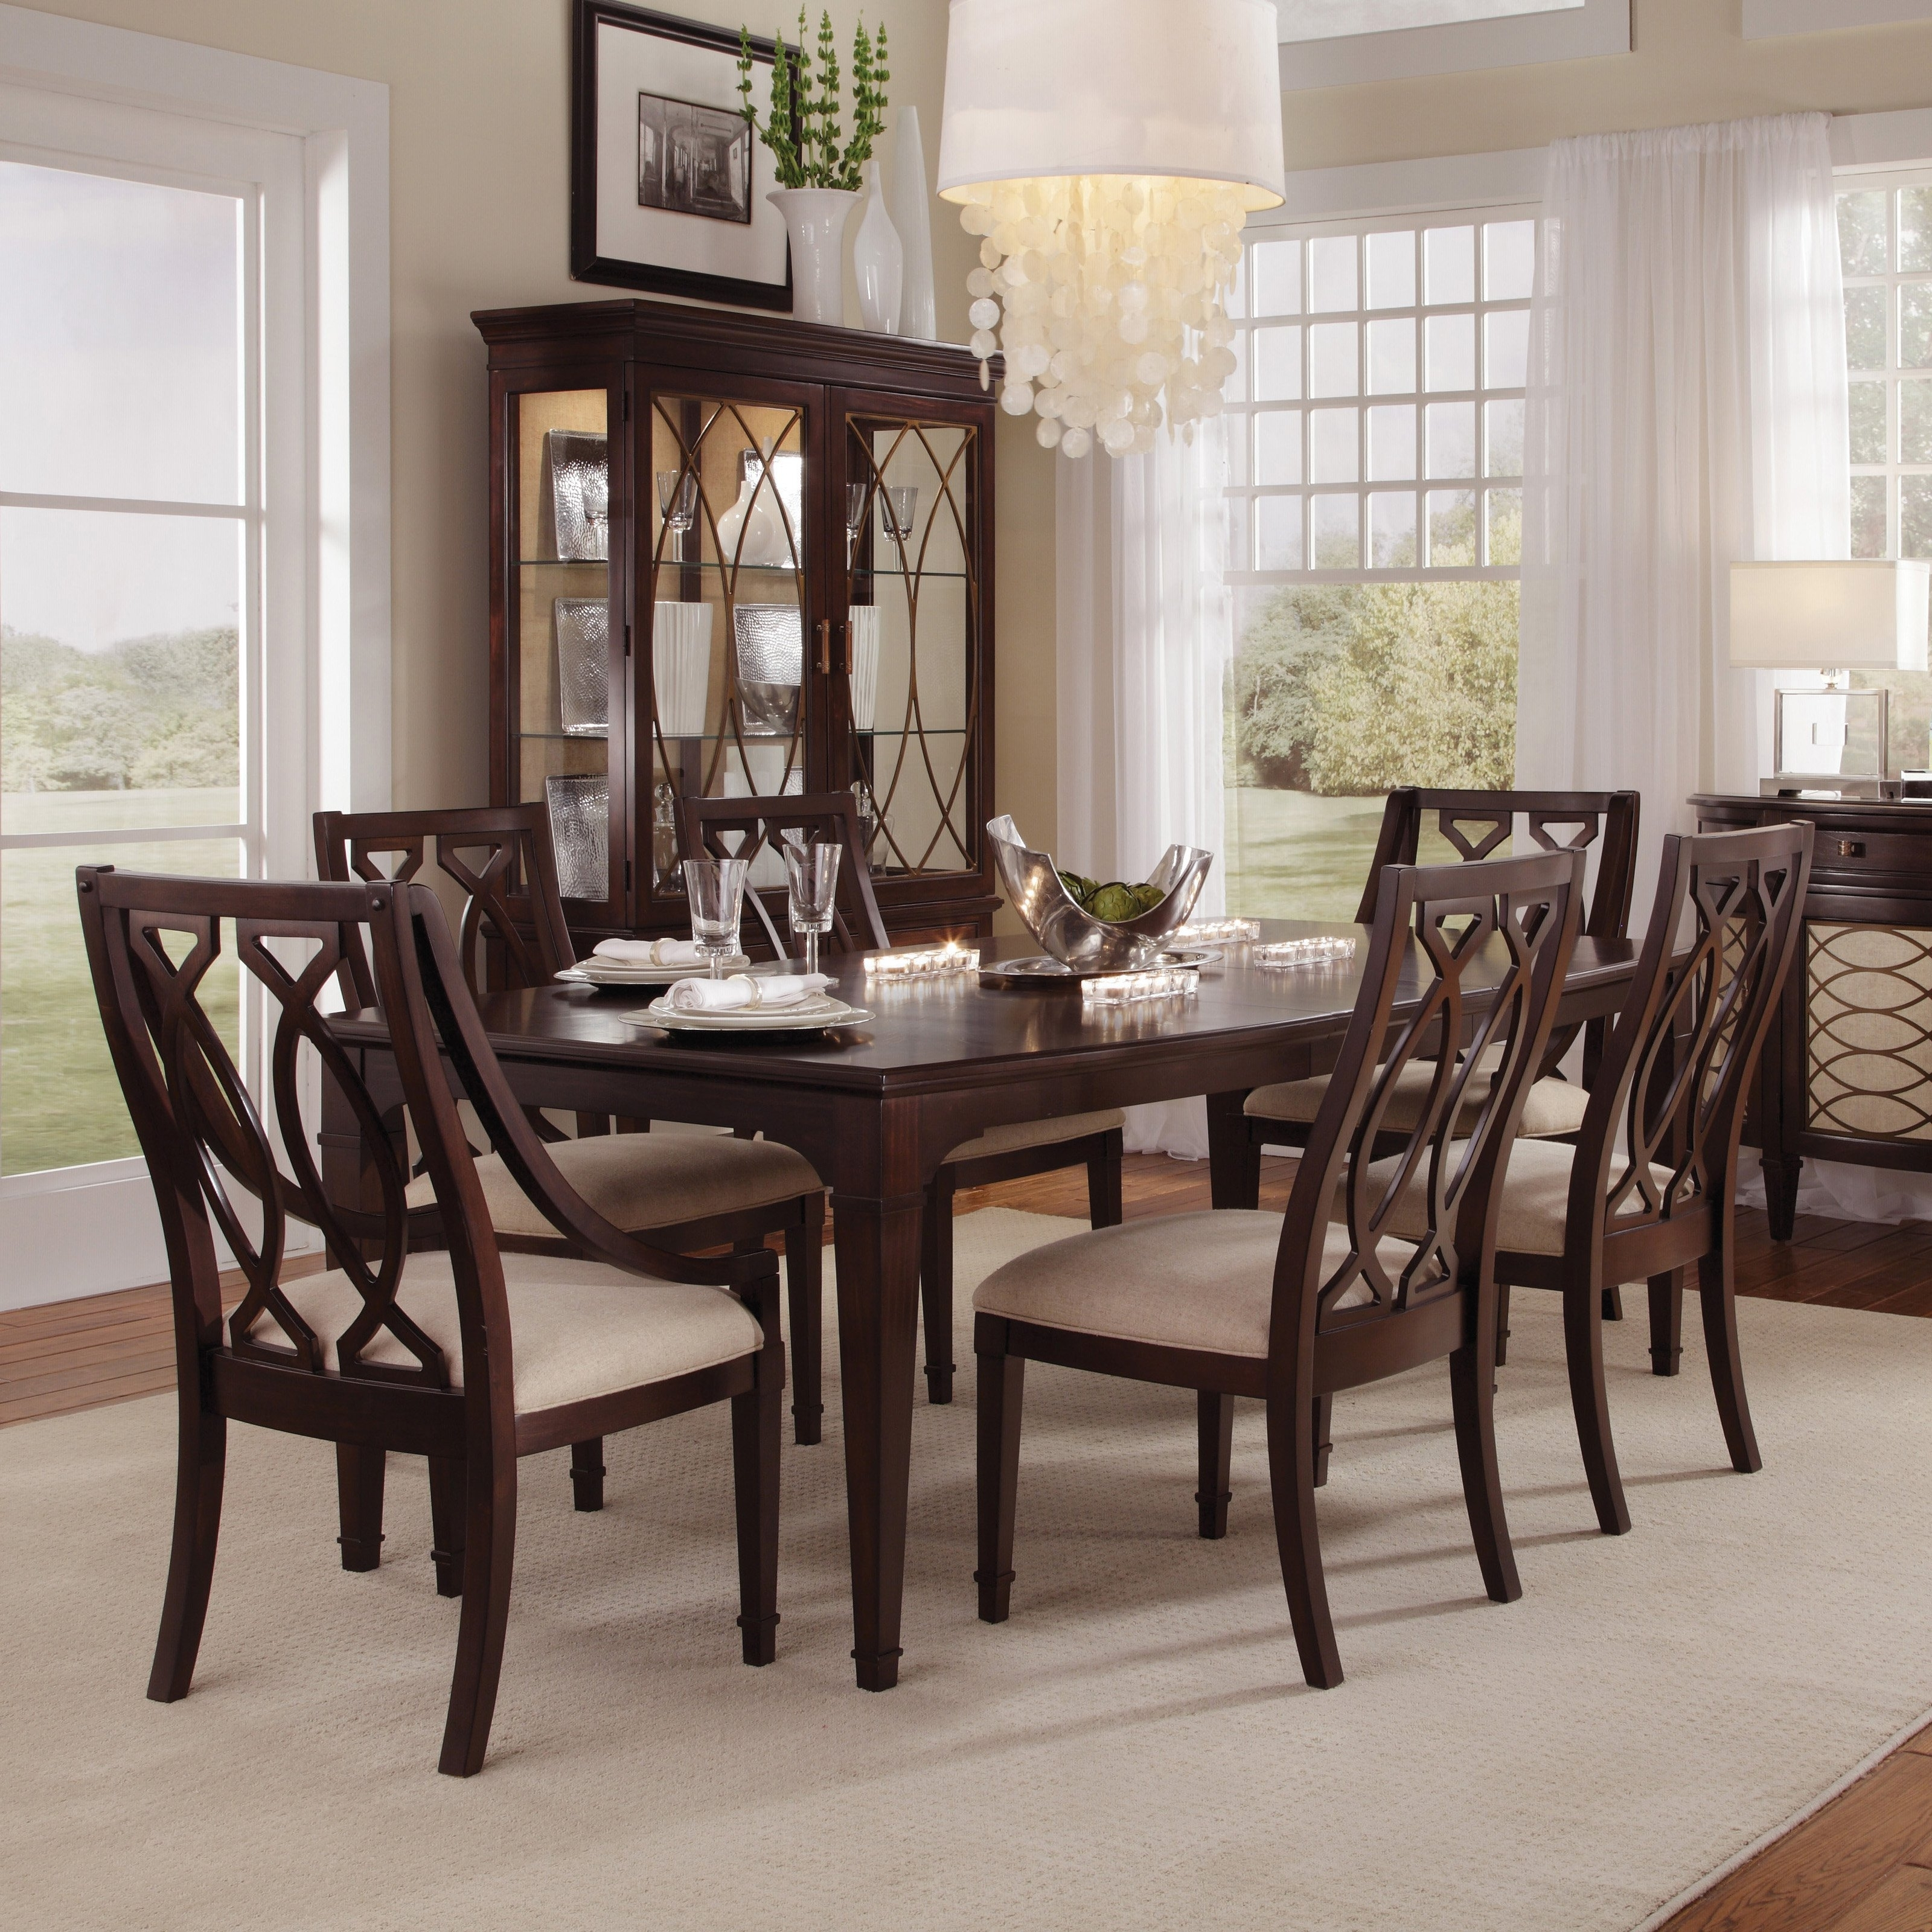 Dark Wood Dining Tables within Most Popular Best Popular Mango Wood Dining Table Home Decor With Additional Dark